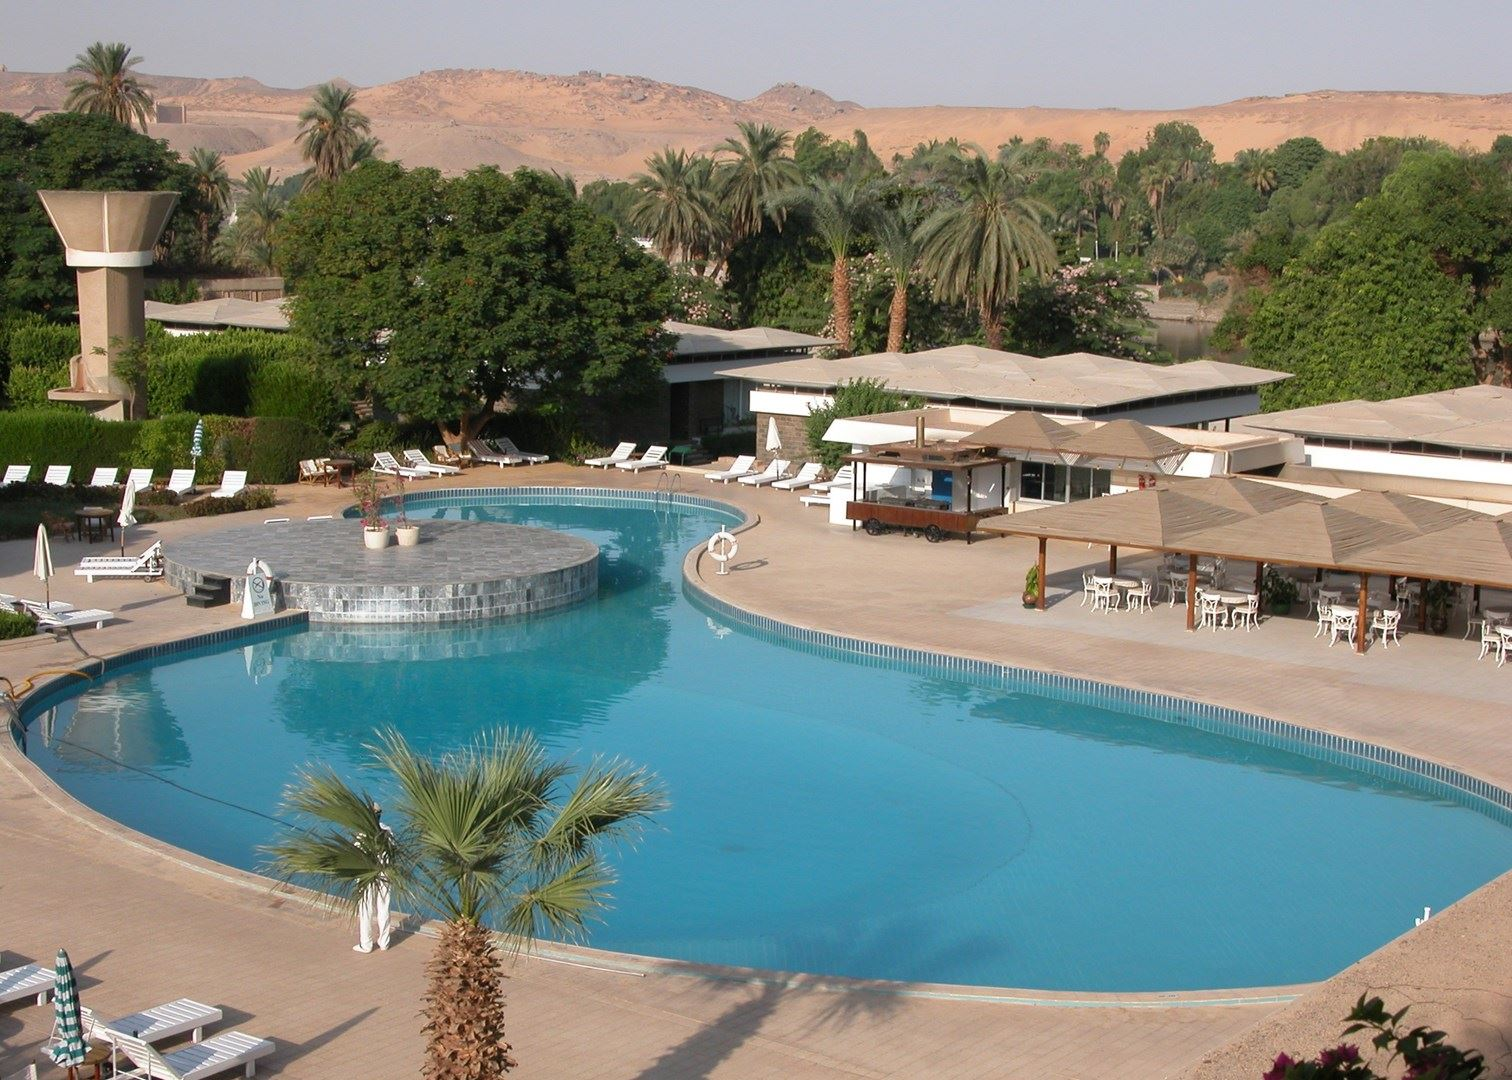 Swimming Beach Aswan, Movenpick Aswan | Hotels in Aswan | Audley Travel